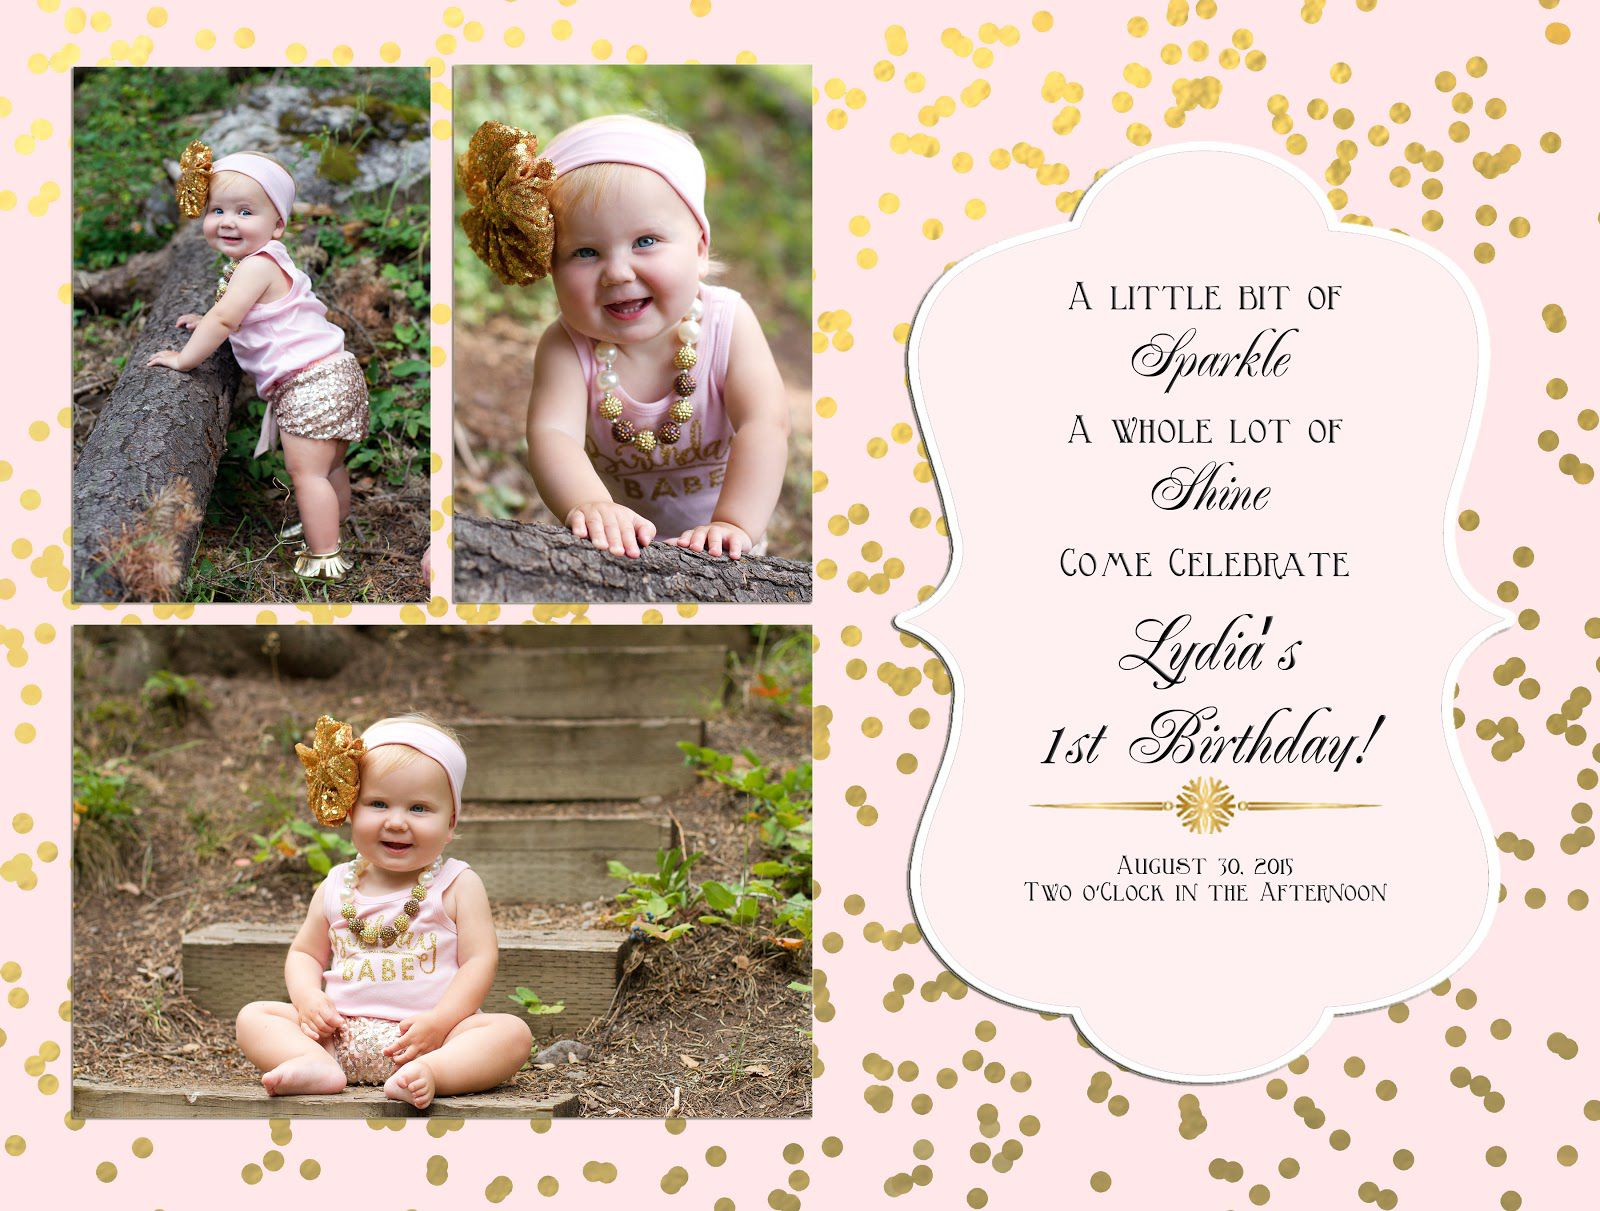 birthday invitation photoshop template ; 18th-birthday-invitation-photoshop